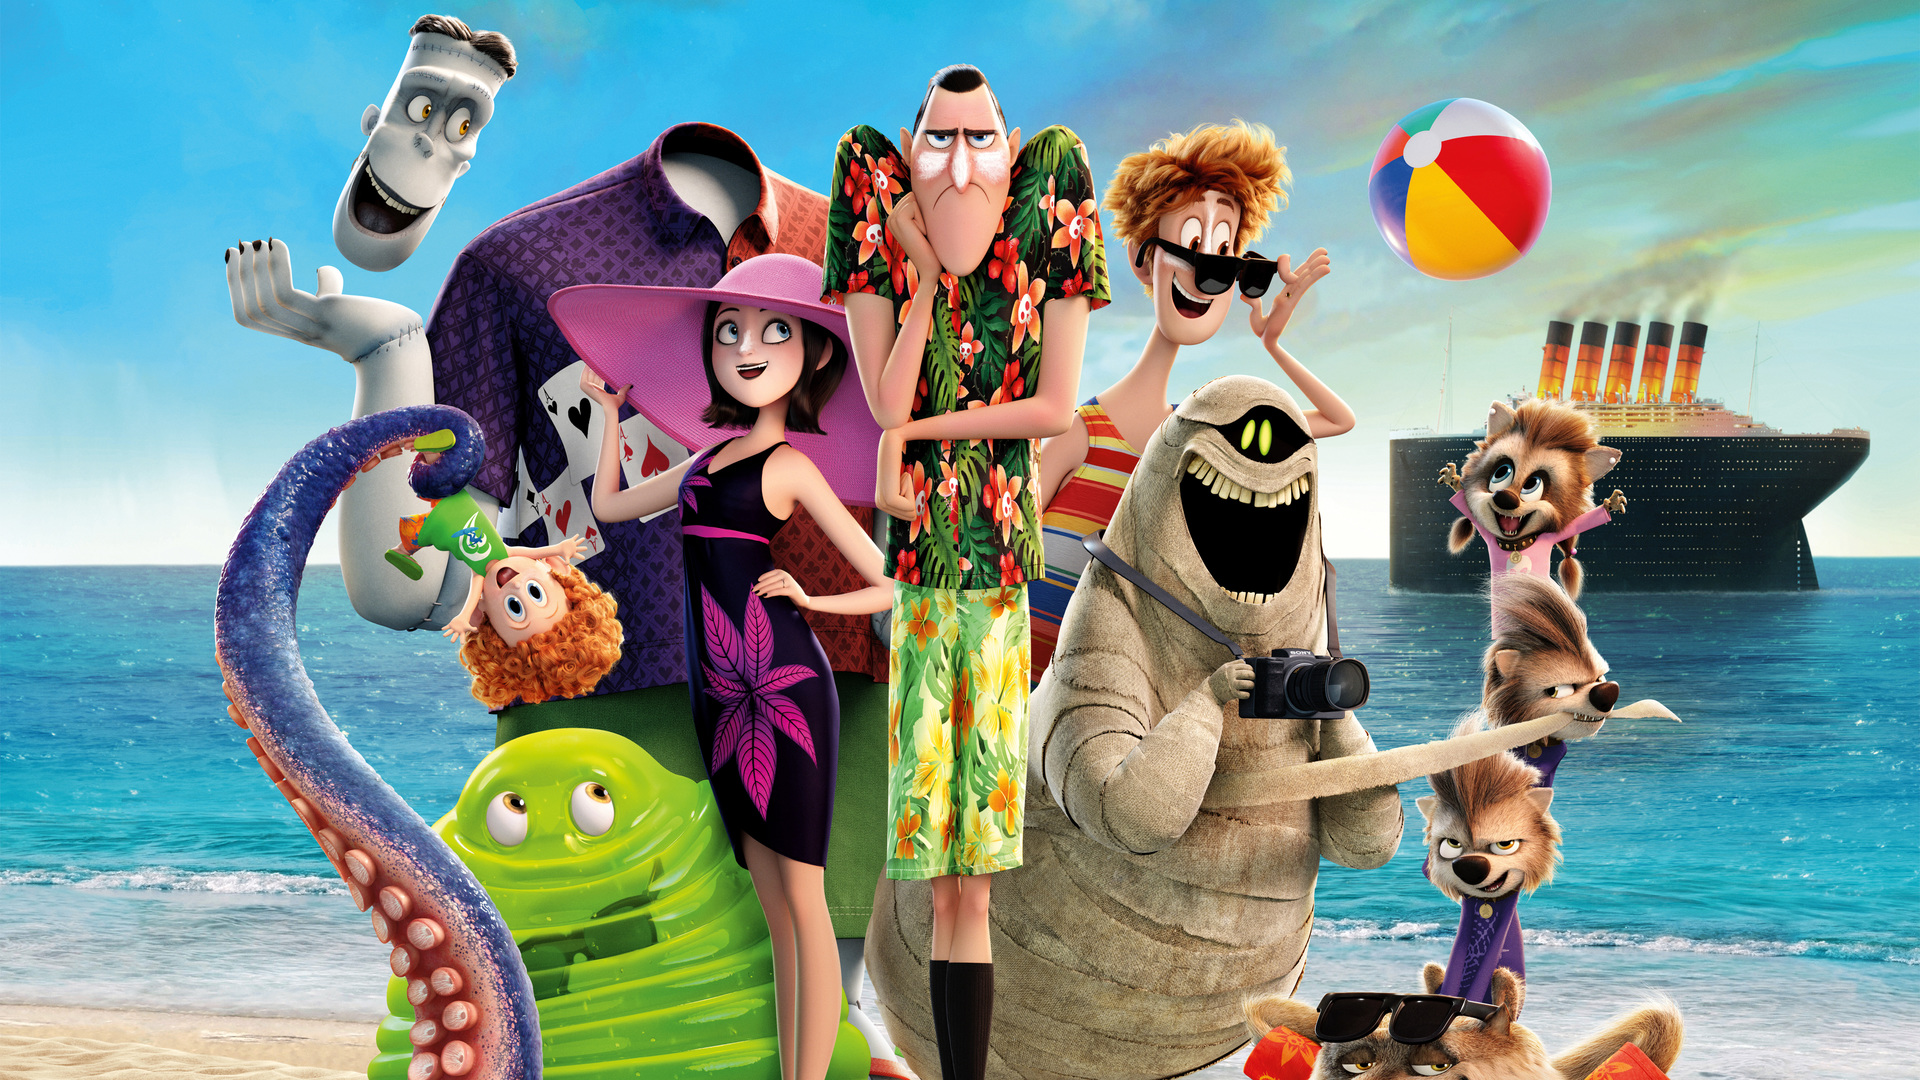 Hotel Transylvania 3 Summer Vacation Review 2018 Just Stop Already